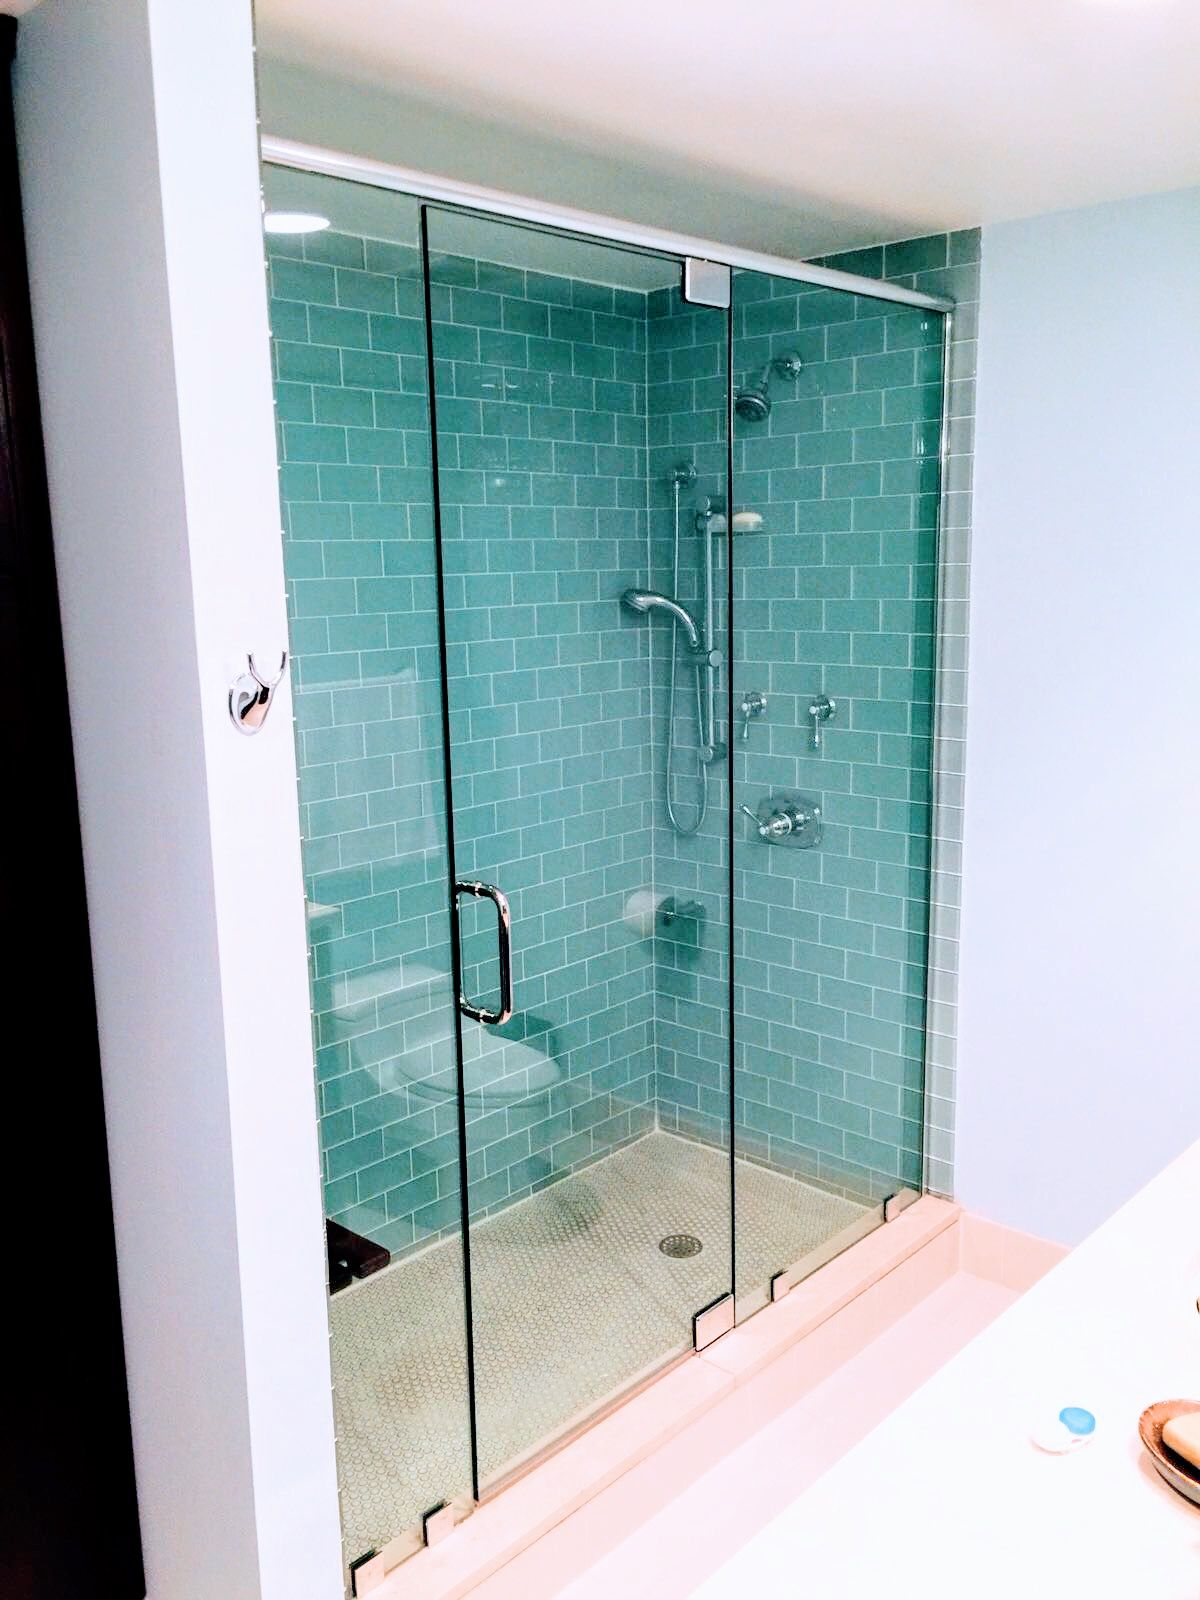 Beautiful Glass Shower Enclosure 1 2 Clear Shower Glass With Header Support Bar For Bat Bathroom Shower Enclosures Glass Shower Doors Glass Shower Enclosures